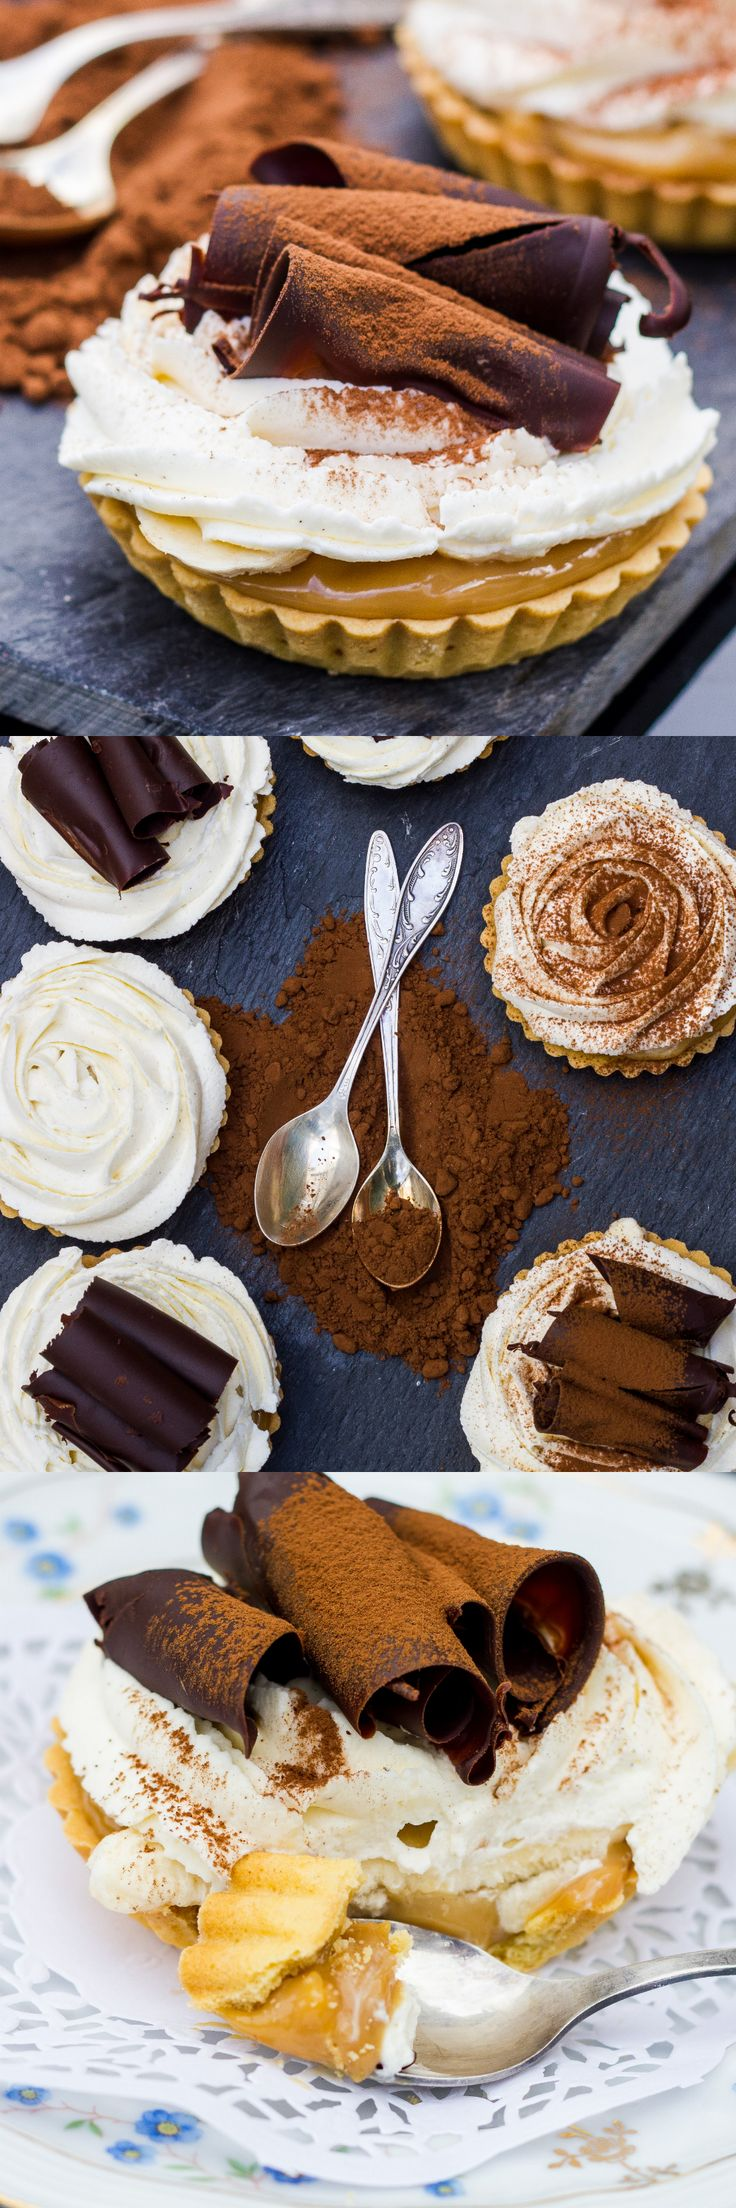 Banoffee Tartlets. Dulce de leche, mascarpone cream and chocolate curls. What could be better!